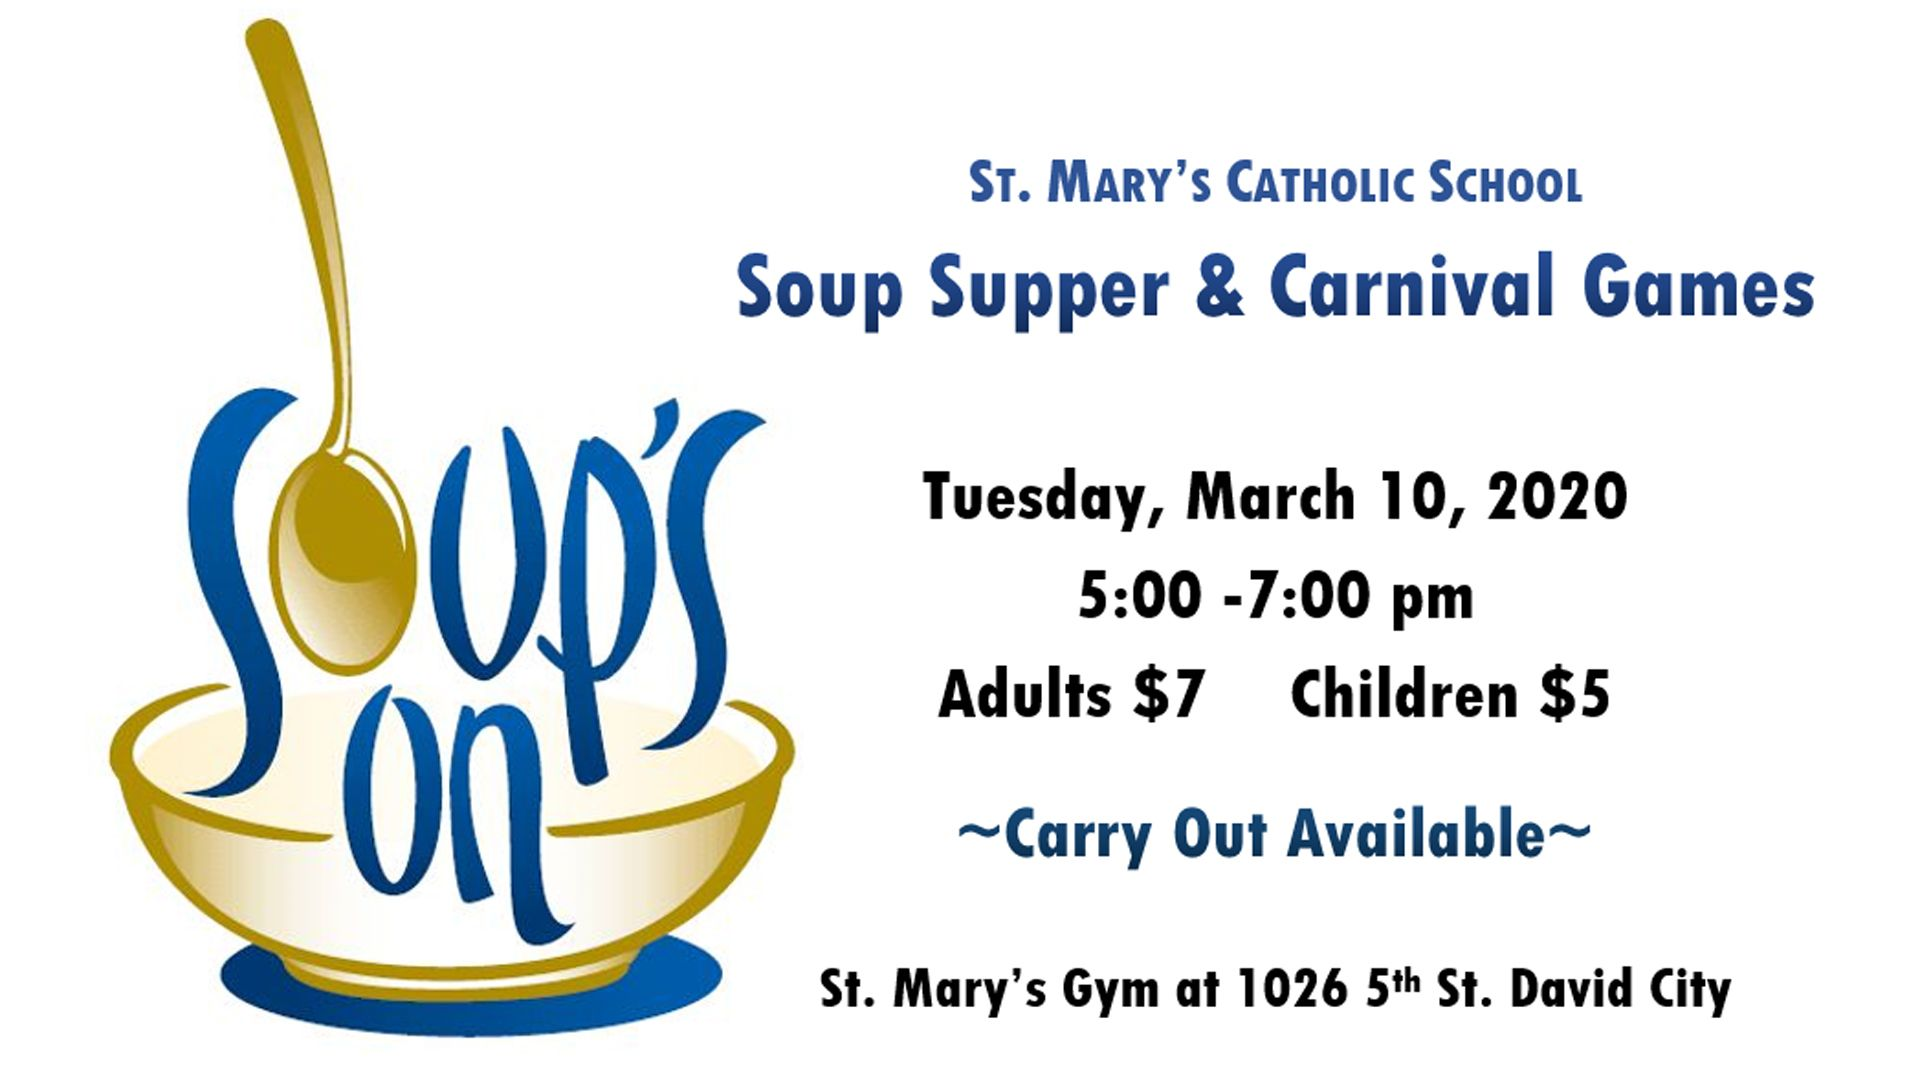 St. Mary's Soup Supper & Carnival Games